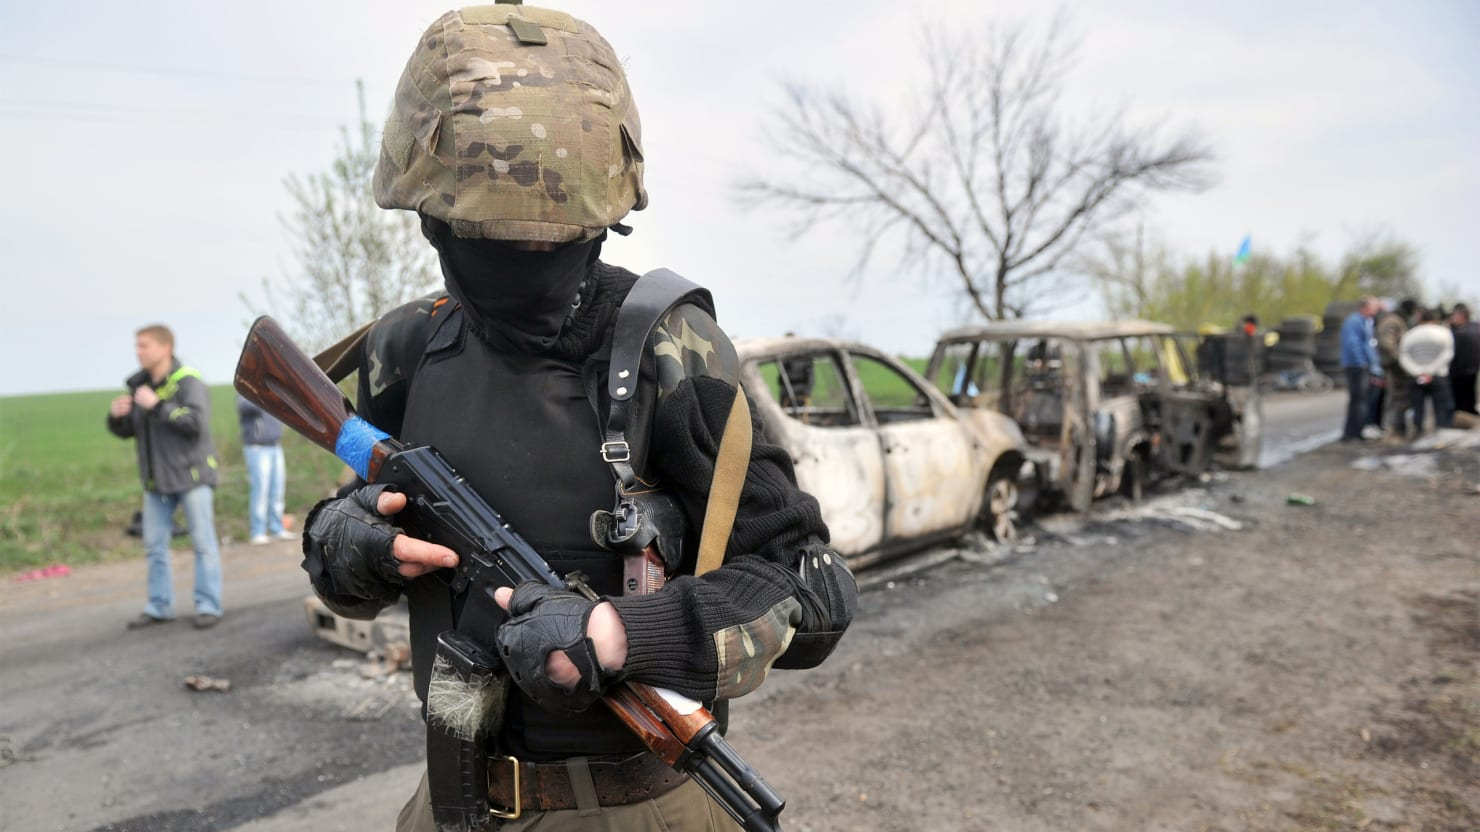 Deadly Shootout in Ukraine Raises Fears of Russian Invasion